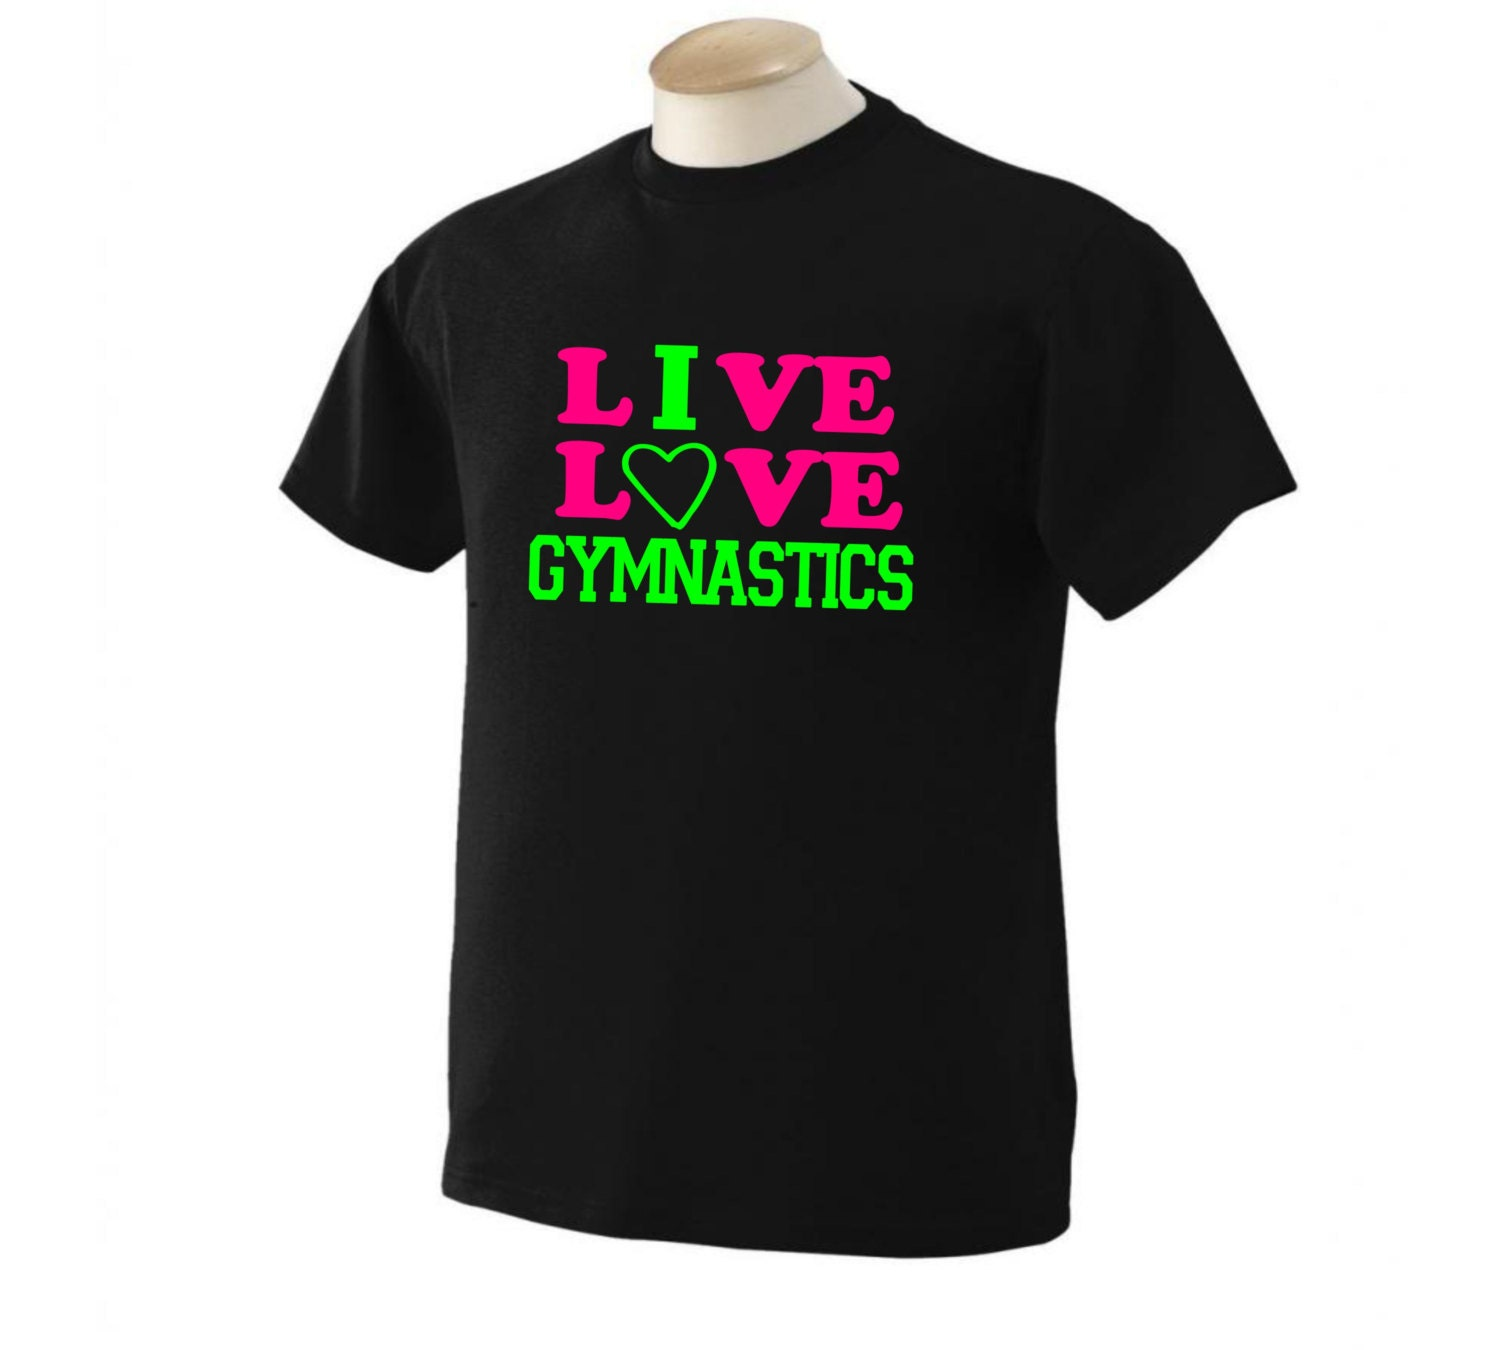 Live love gymnastics t shirt neon design sports shirt by Gymnastics t shirt designs